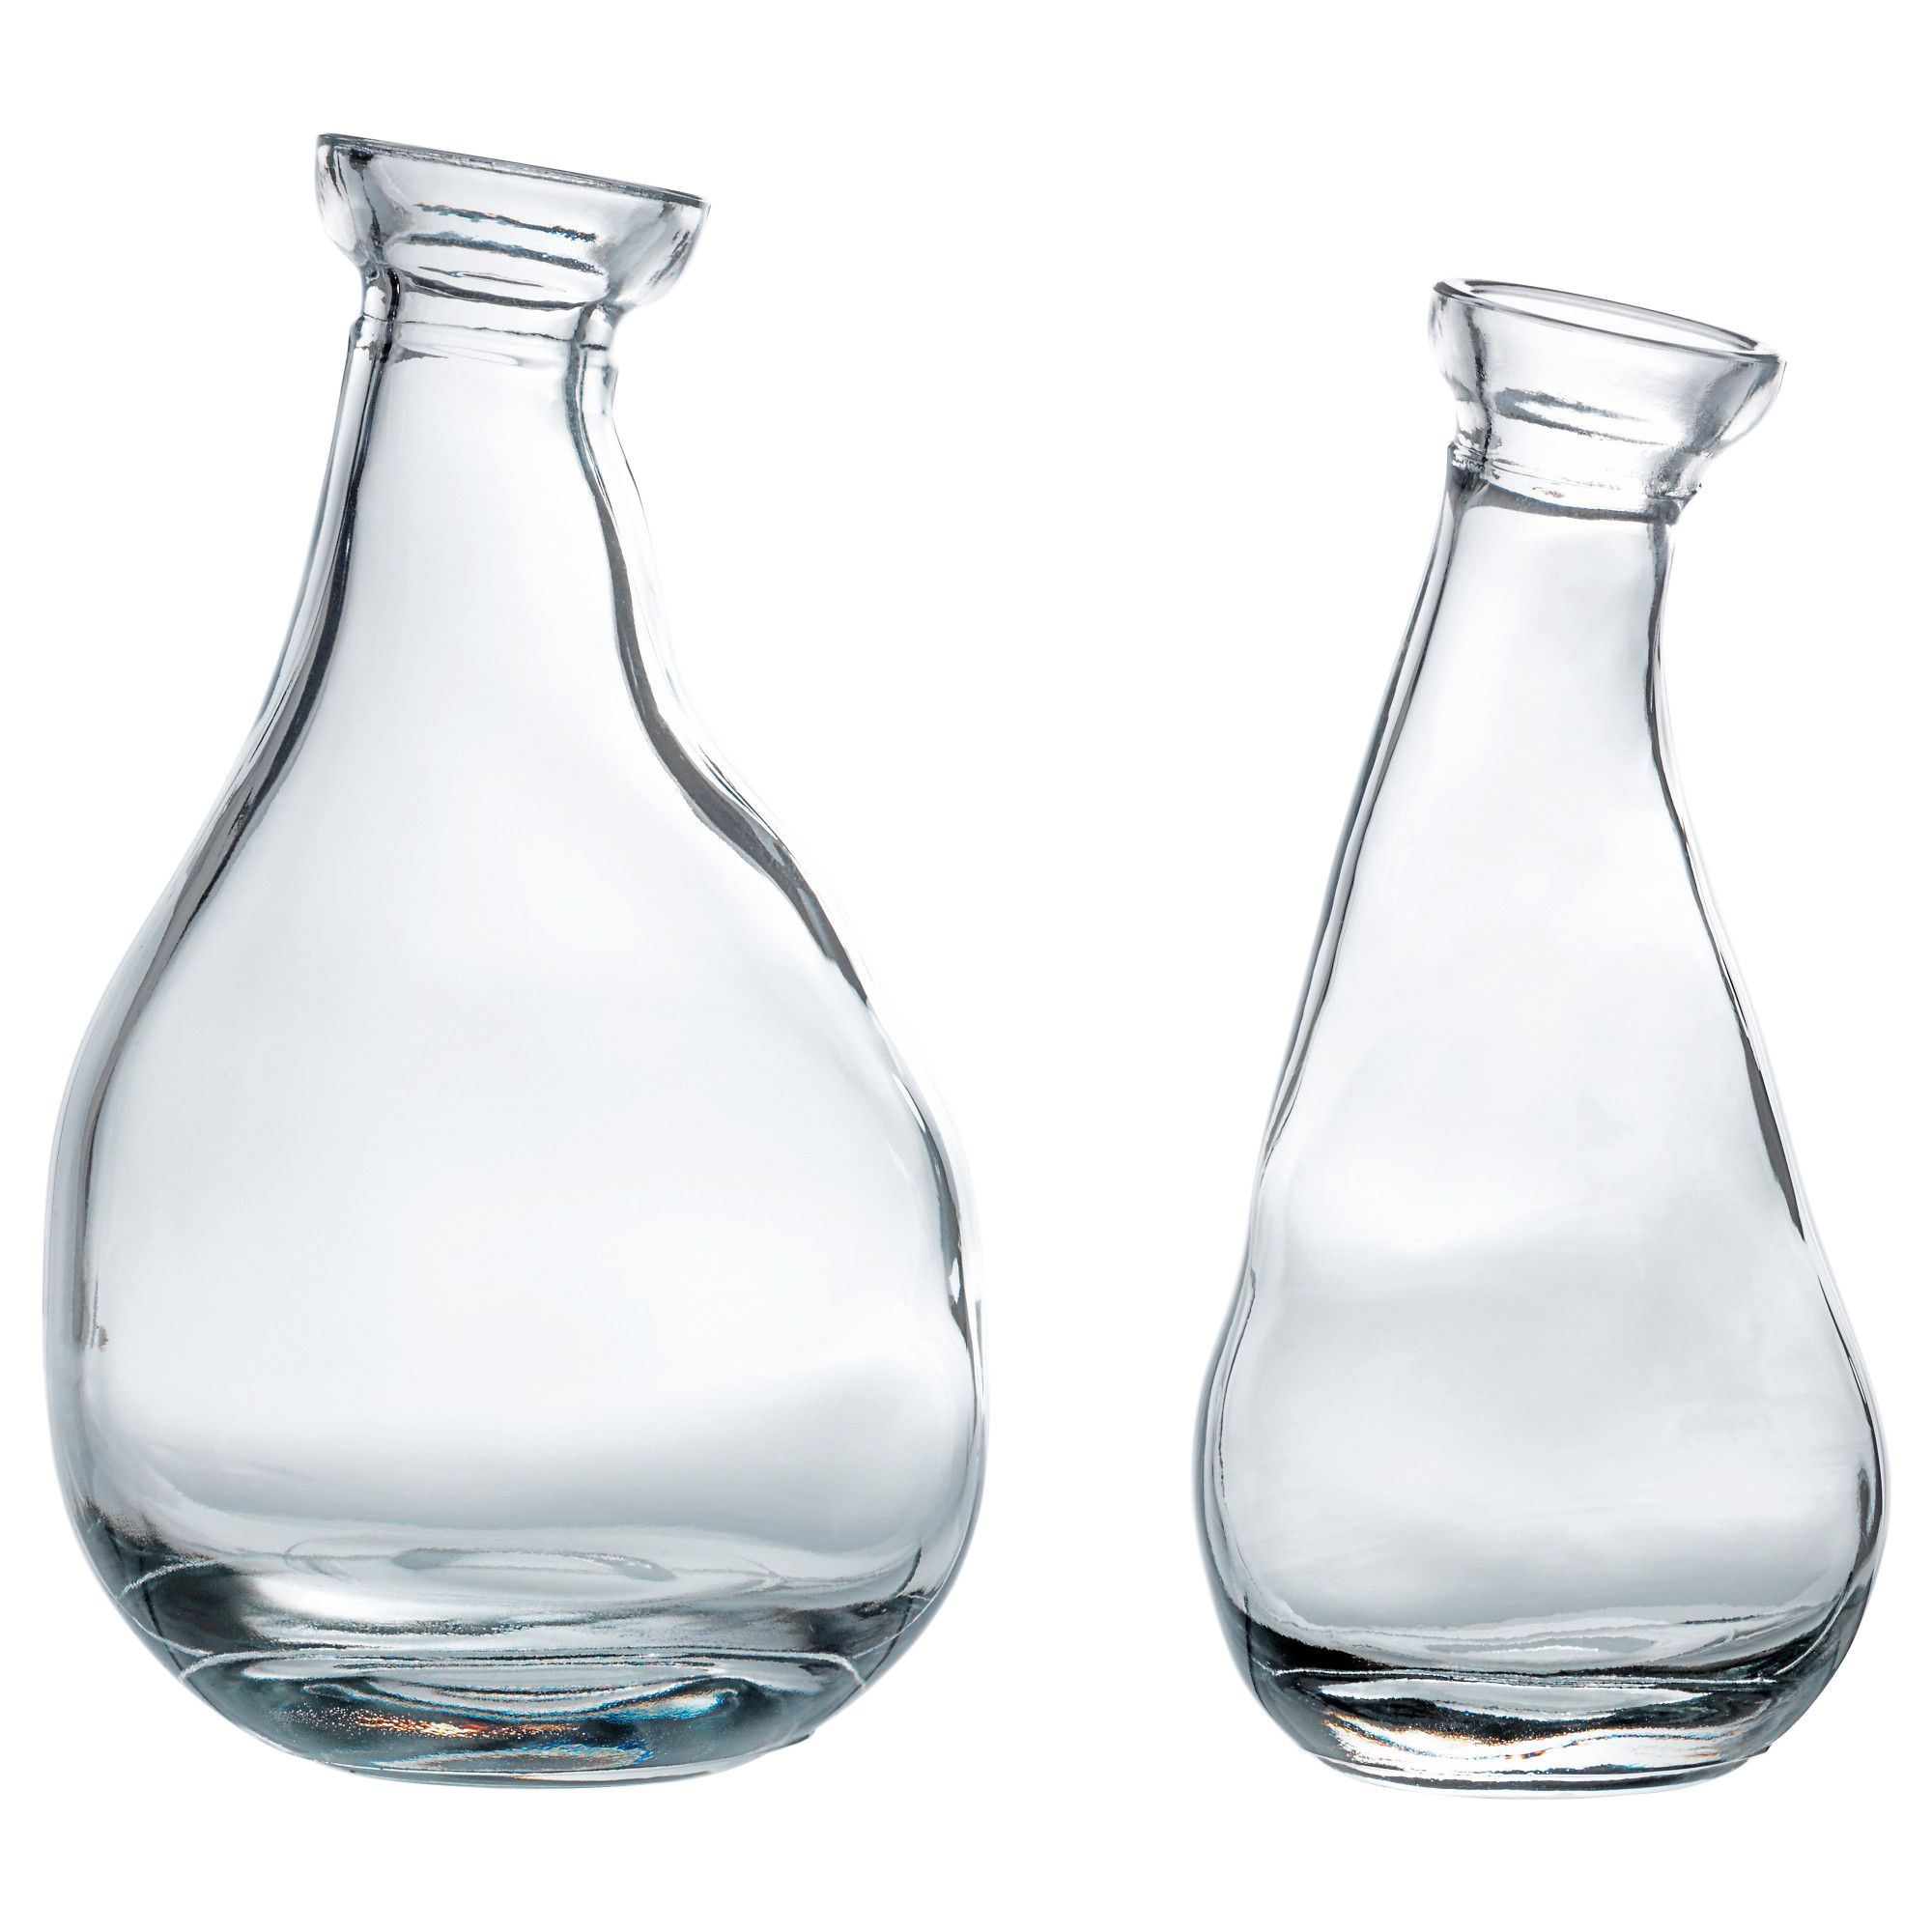 Ikea vrvind vase set of 2 the unique shape makes the vases ikea vrvind vase set of 2 clear glass the unique shape makes the vases beautiful both with and without flowers reviewsmspy